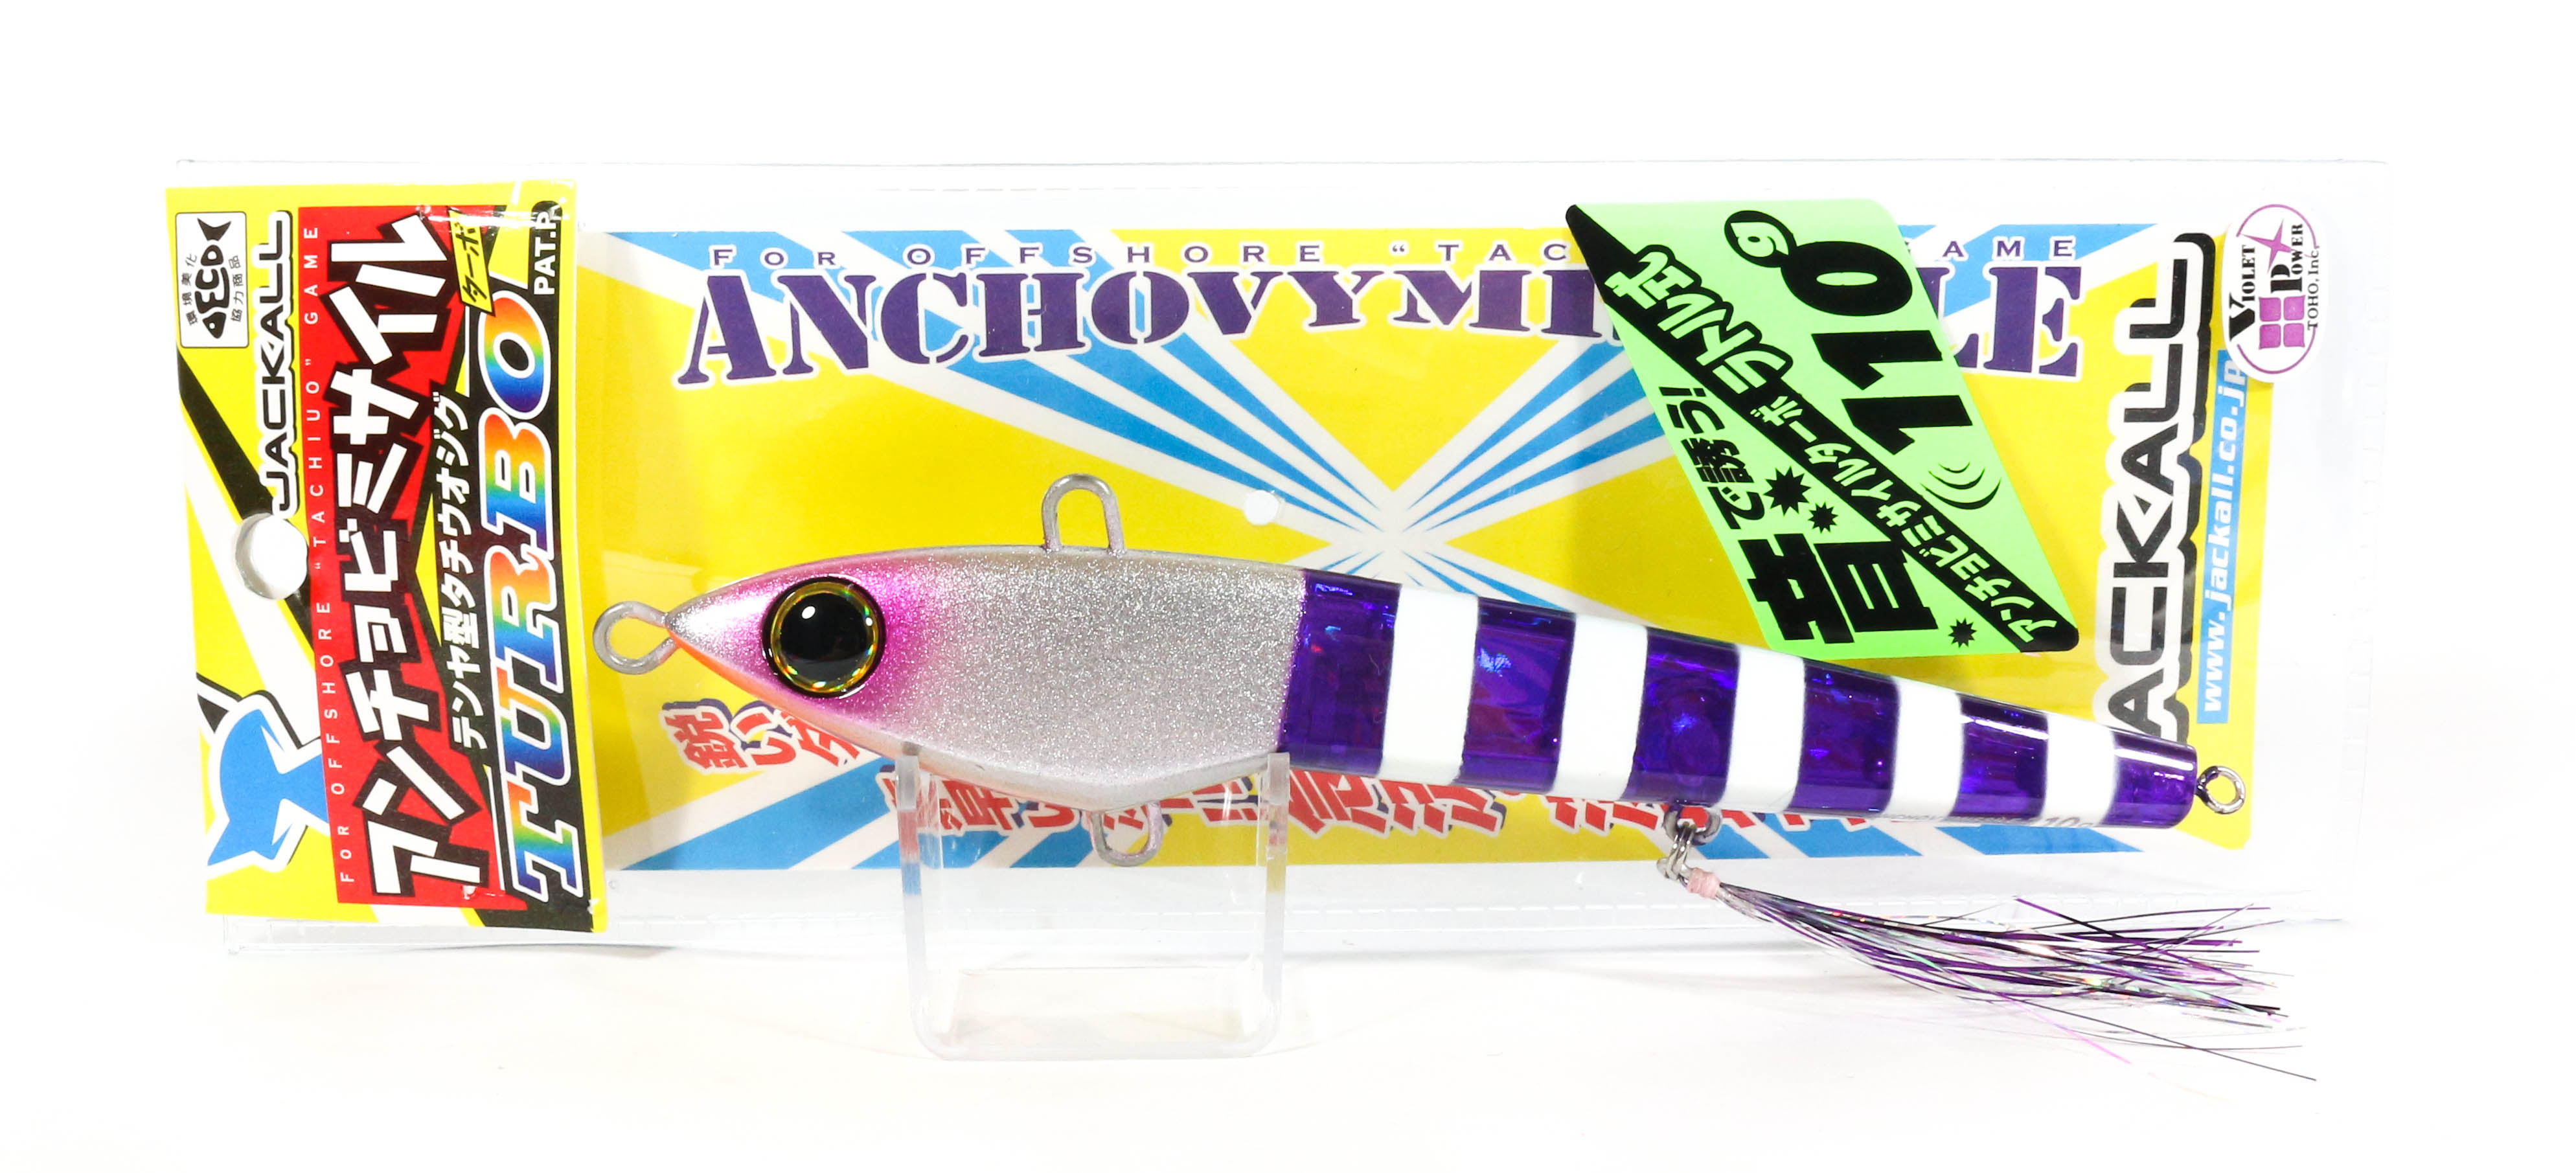 Sale Jackall Anchovy Missile Turbo RattleShiki Jig 90 grams Purple Stripe (5436)